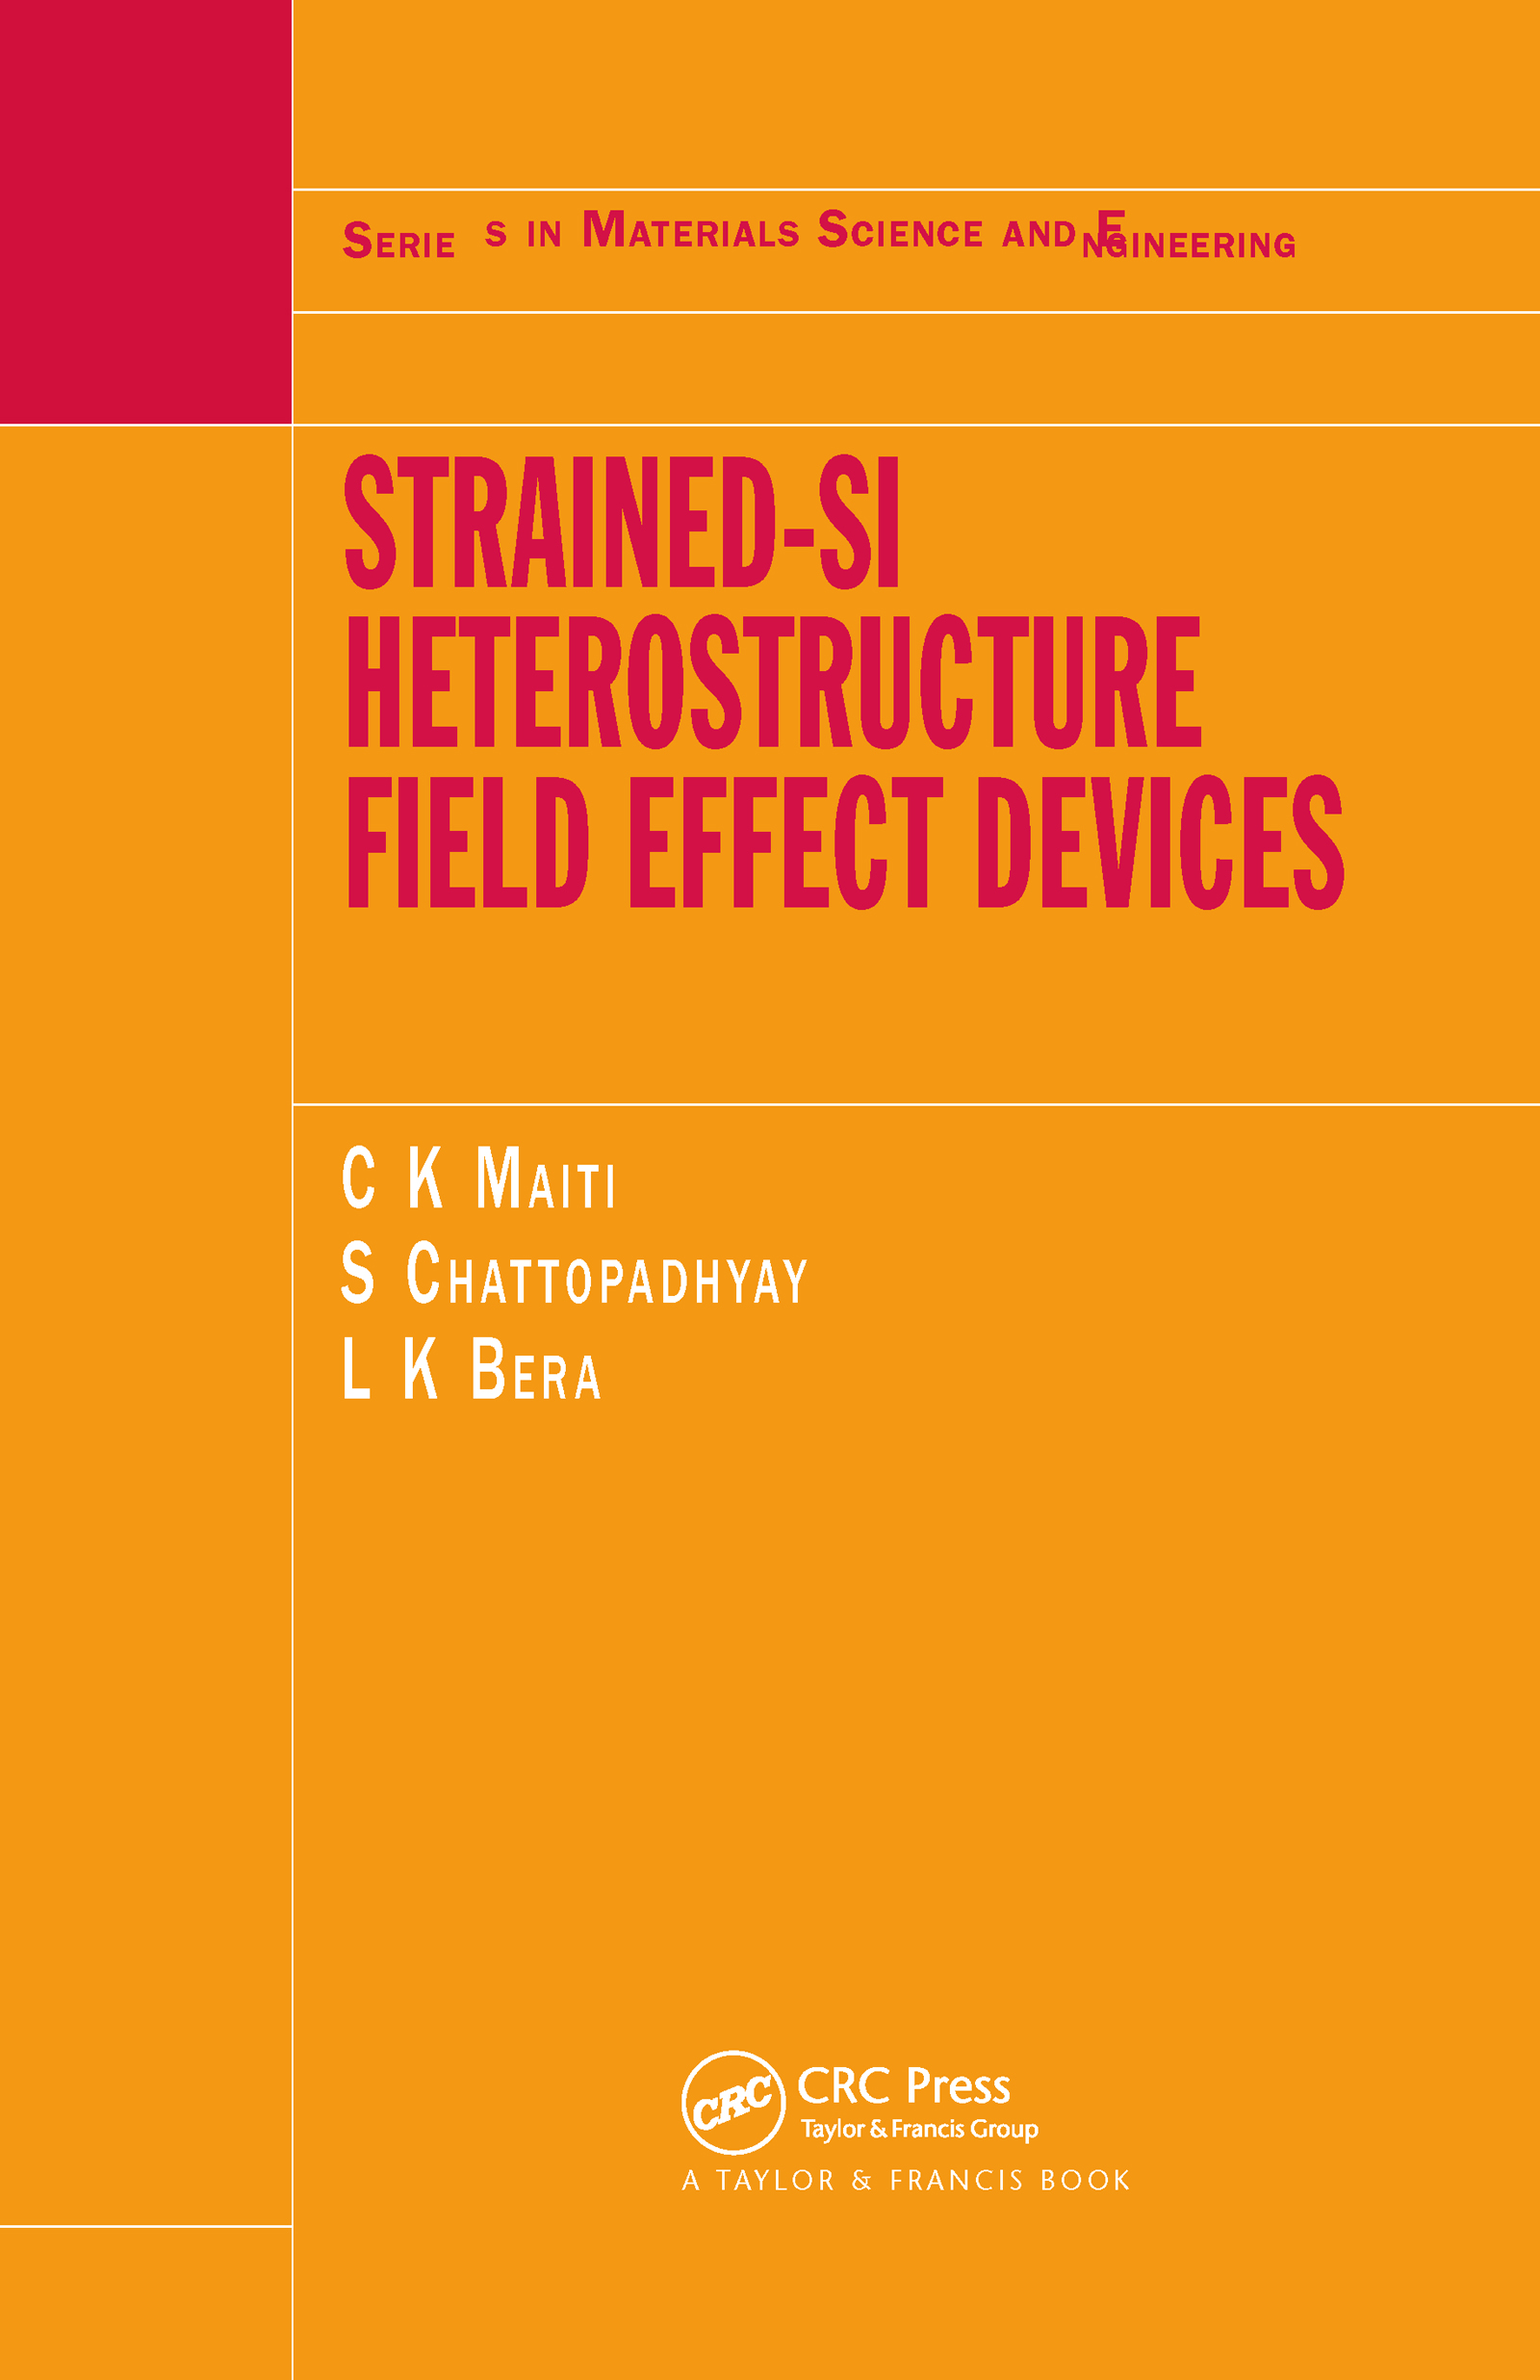 Strained-Si Heterostructure Field Effect Devices book cover